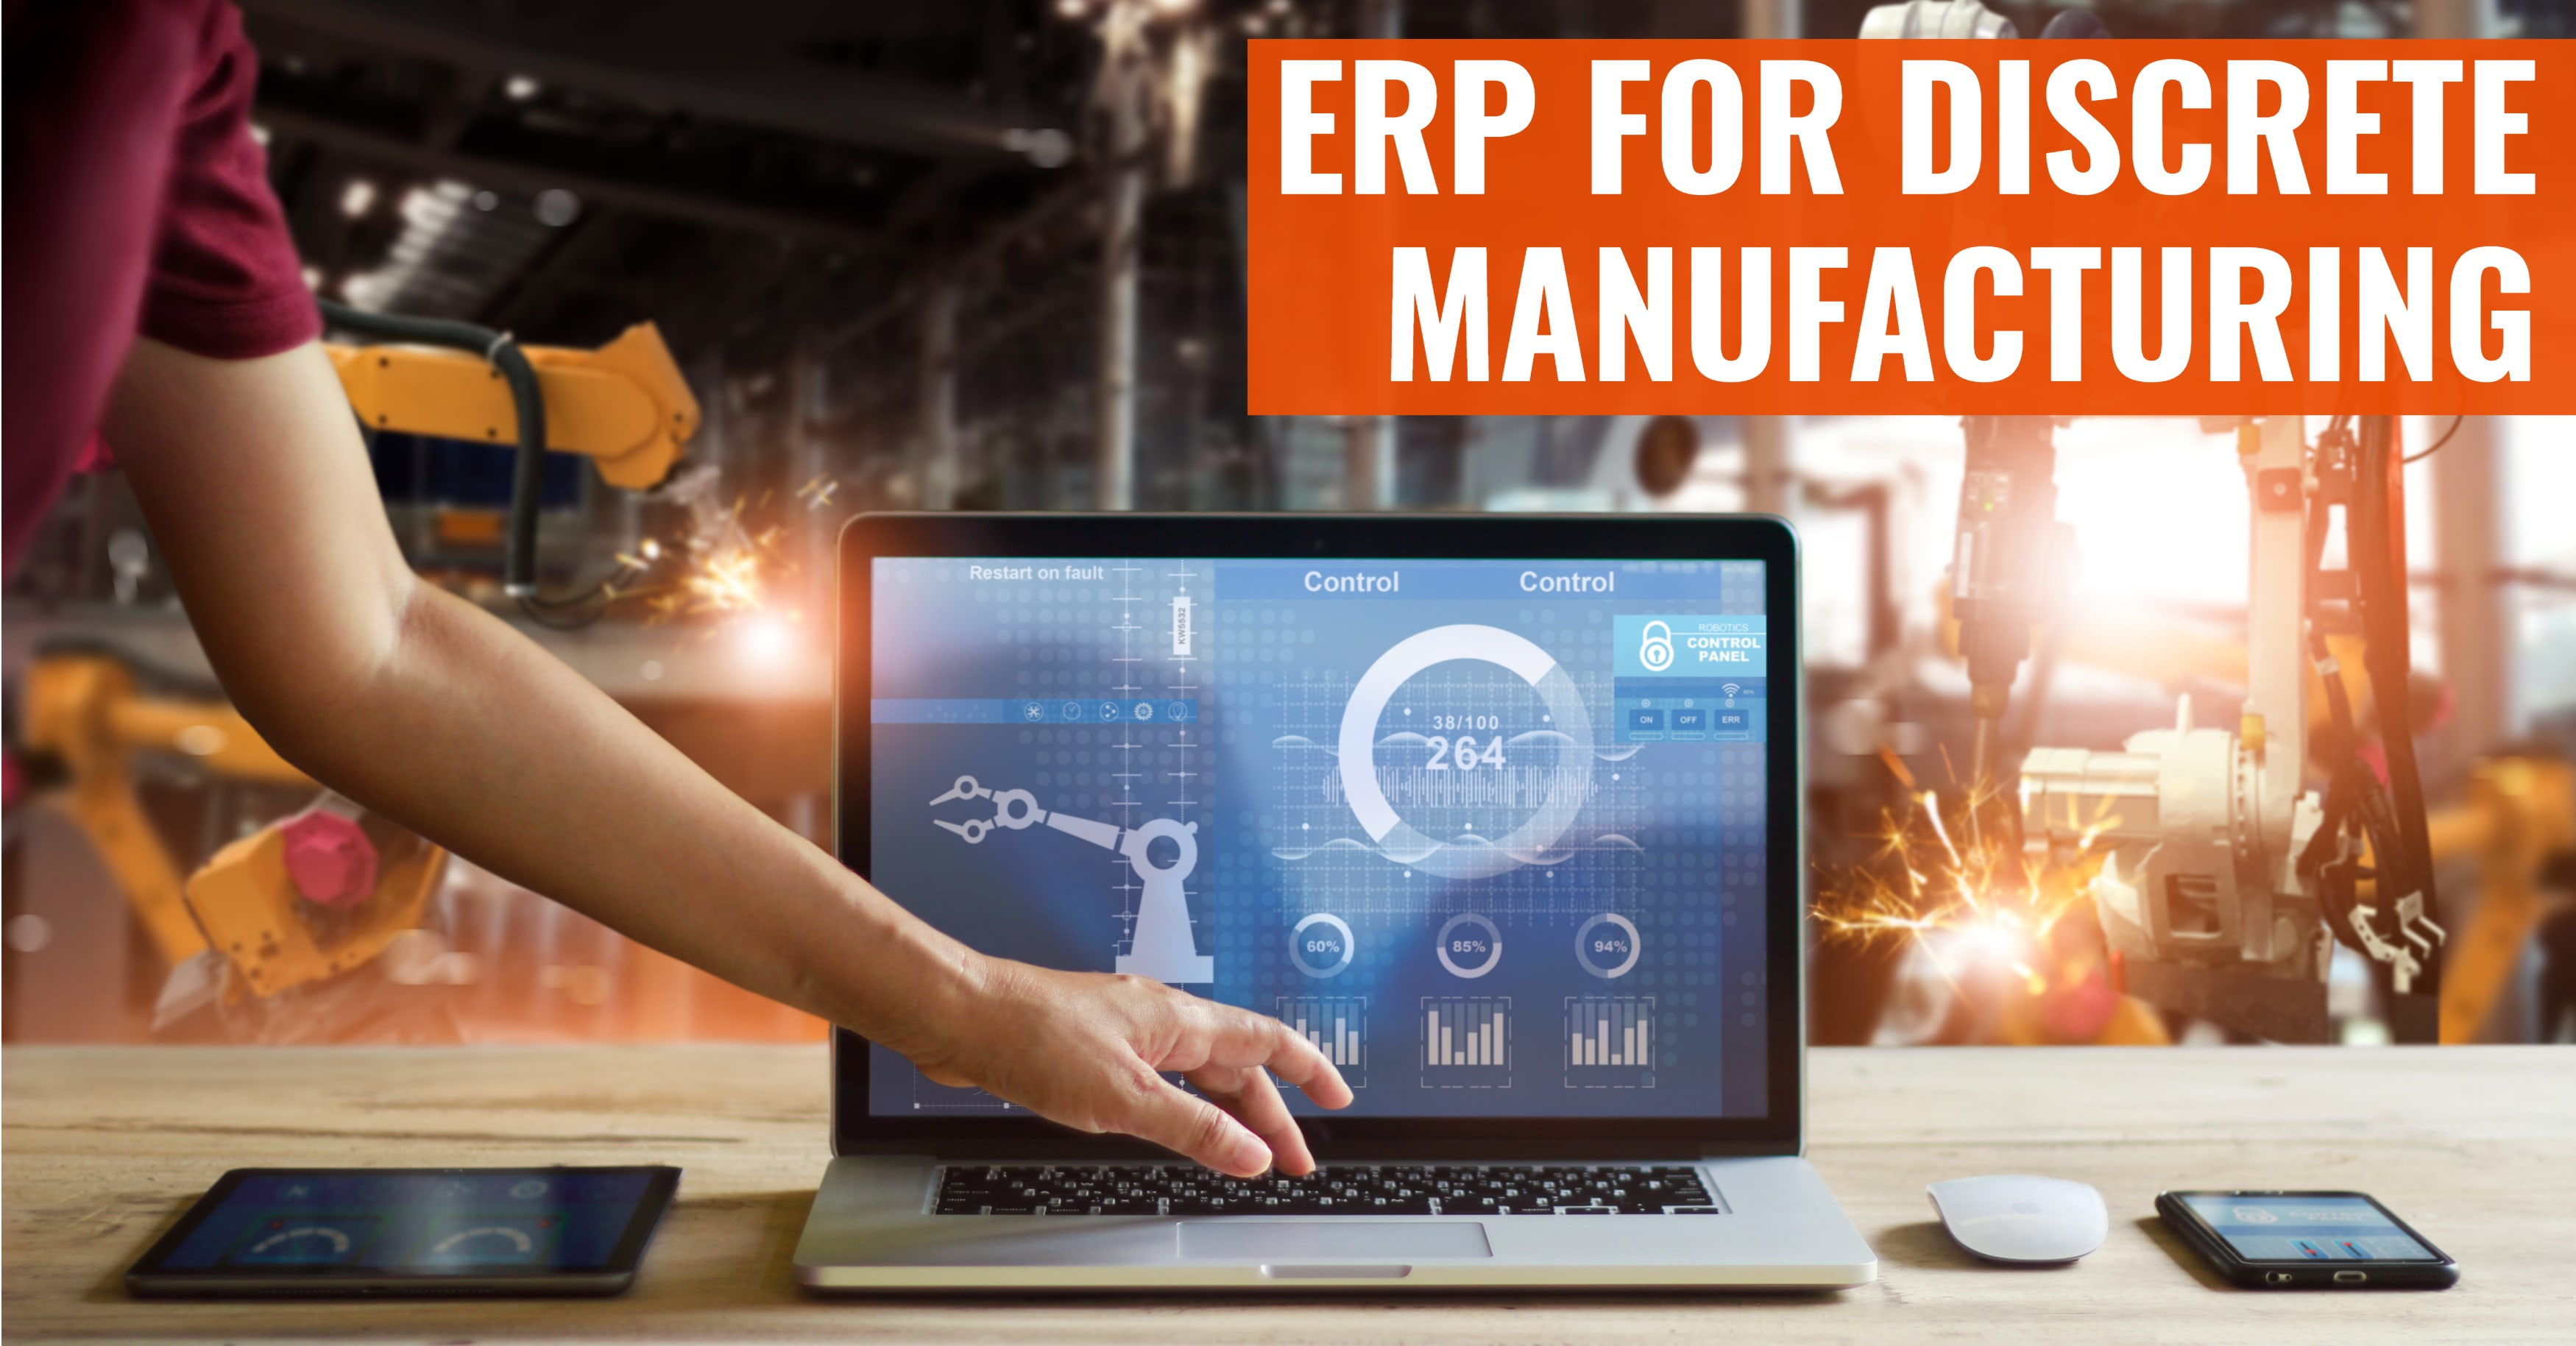 Does Your ERP Software Support Discrete Manufacturing?